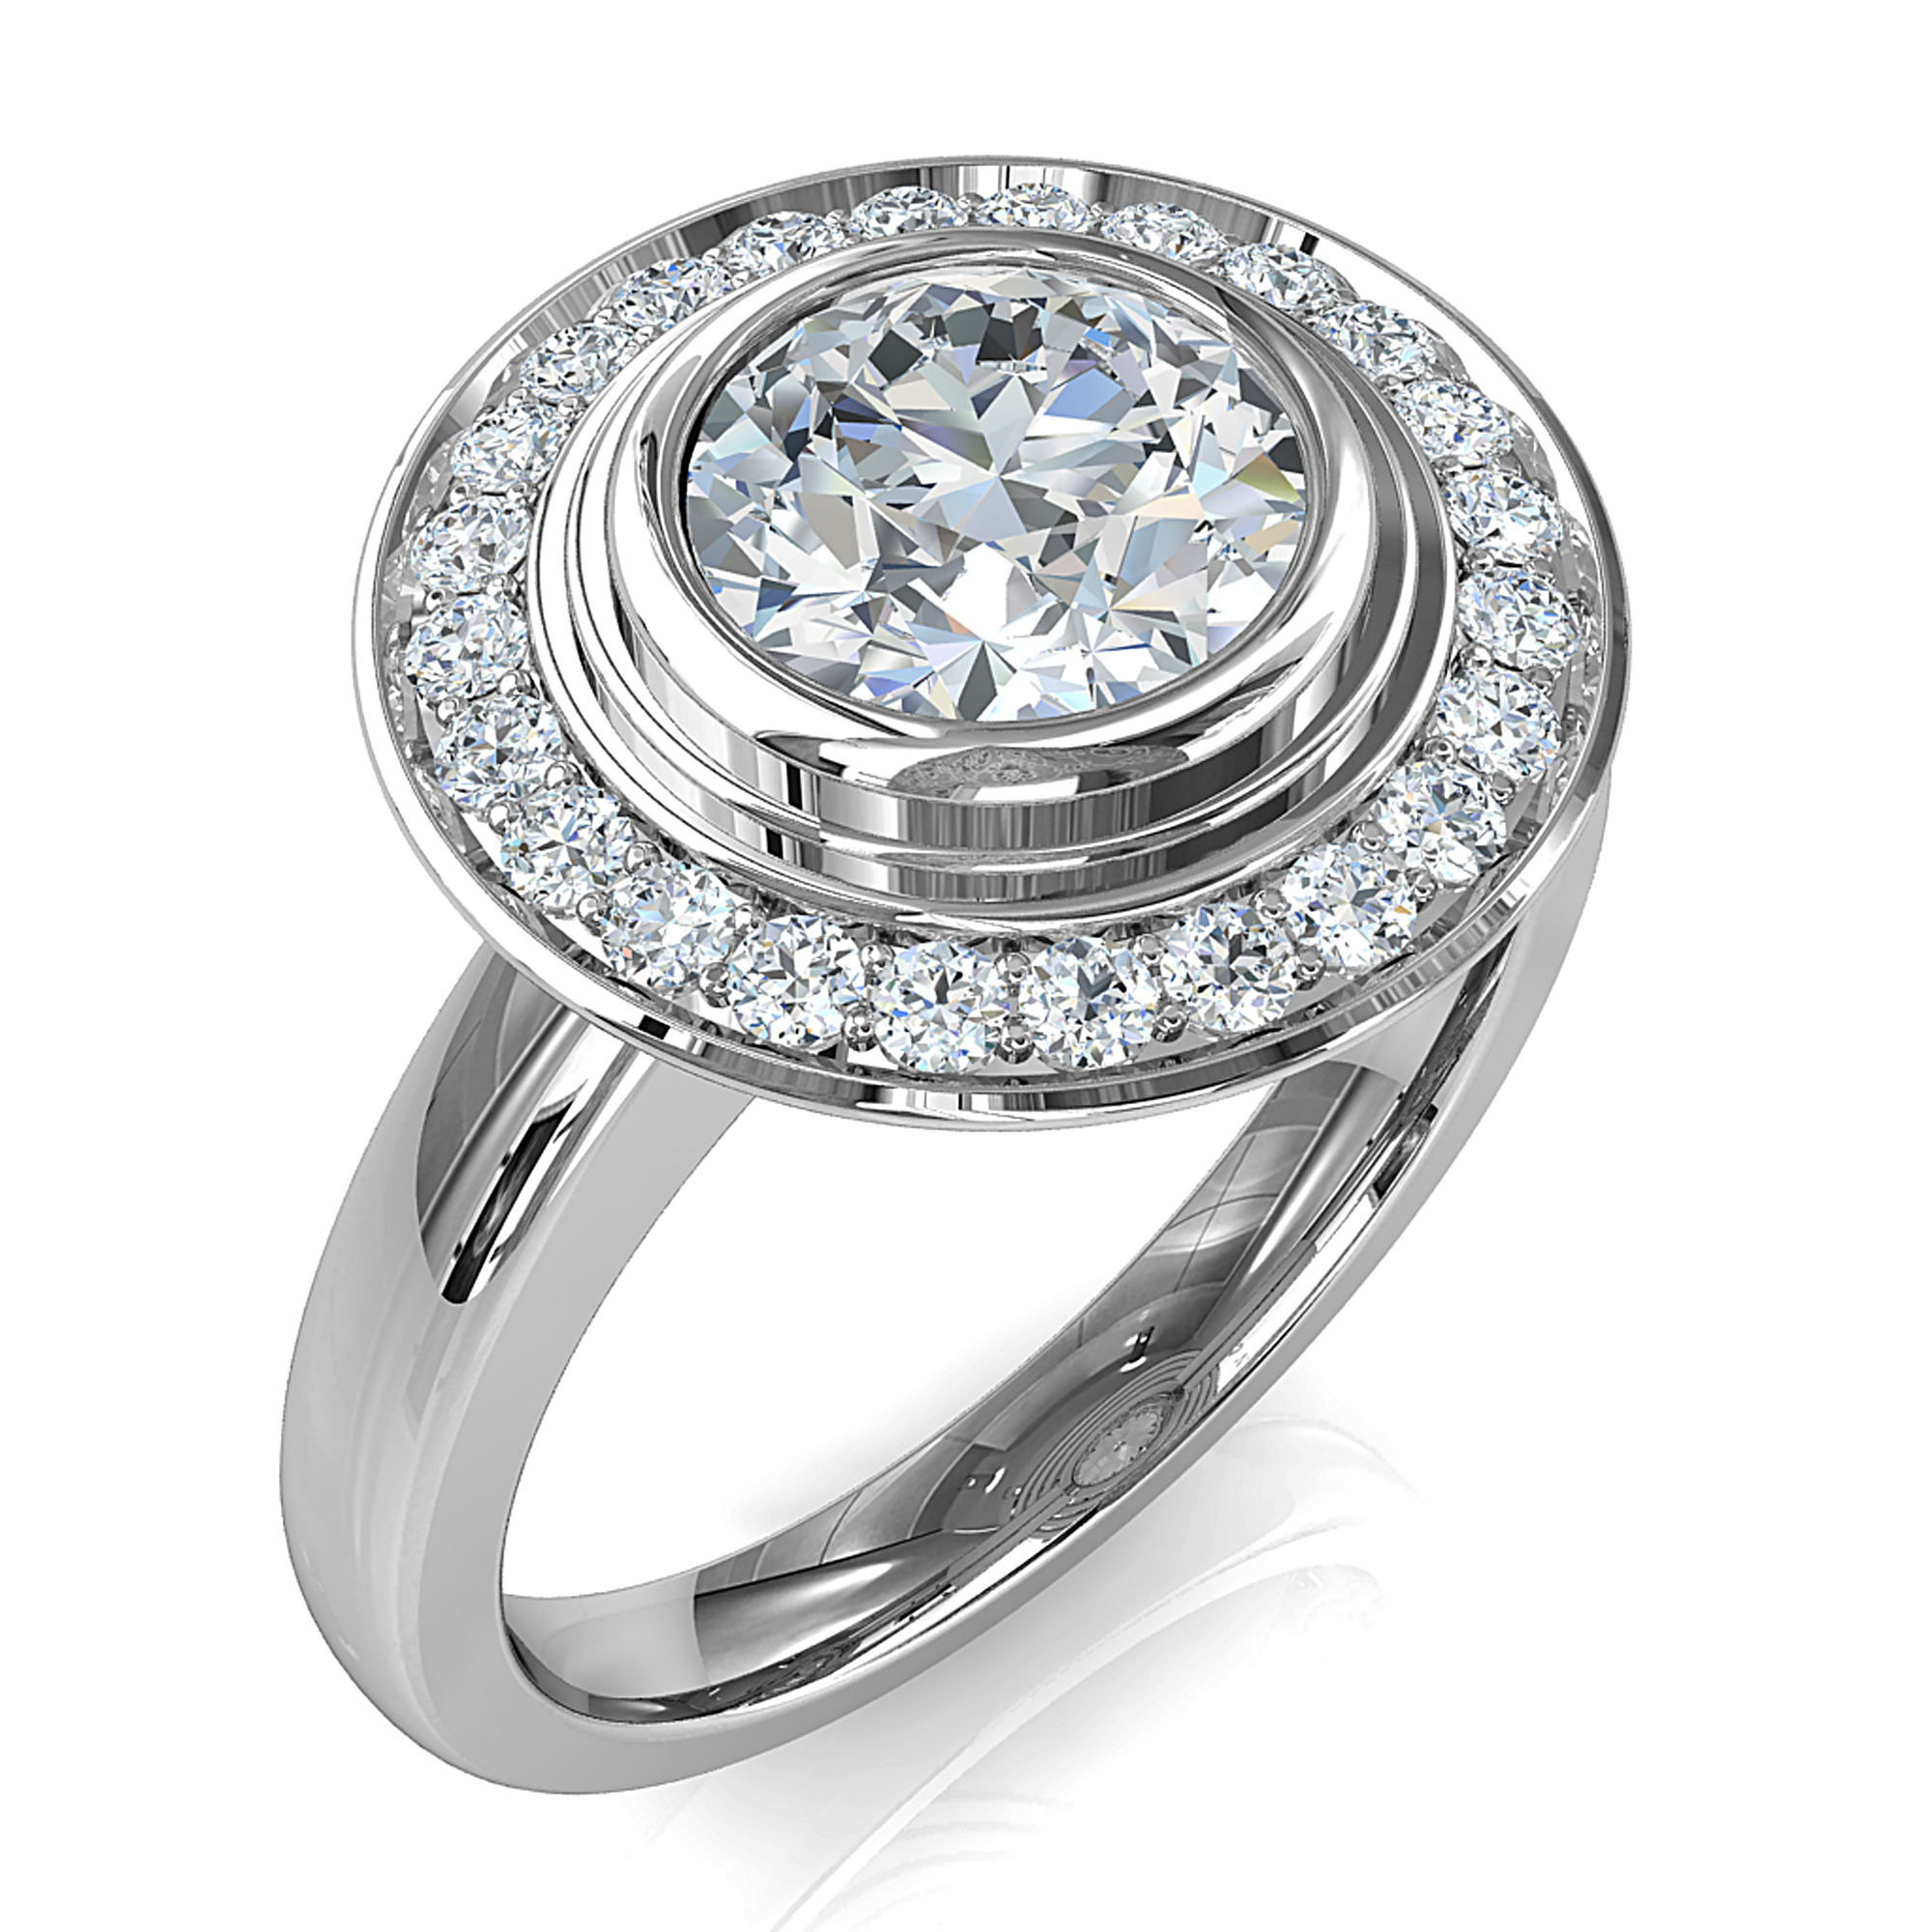 Round Brilliant Cut Diamond Halo Engagement Ring, Triple Bezel Set in a Bead Set Halo on a Plain Straight Band.